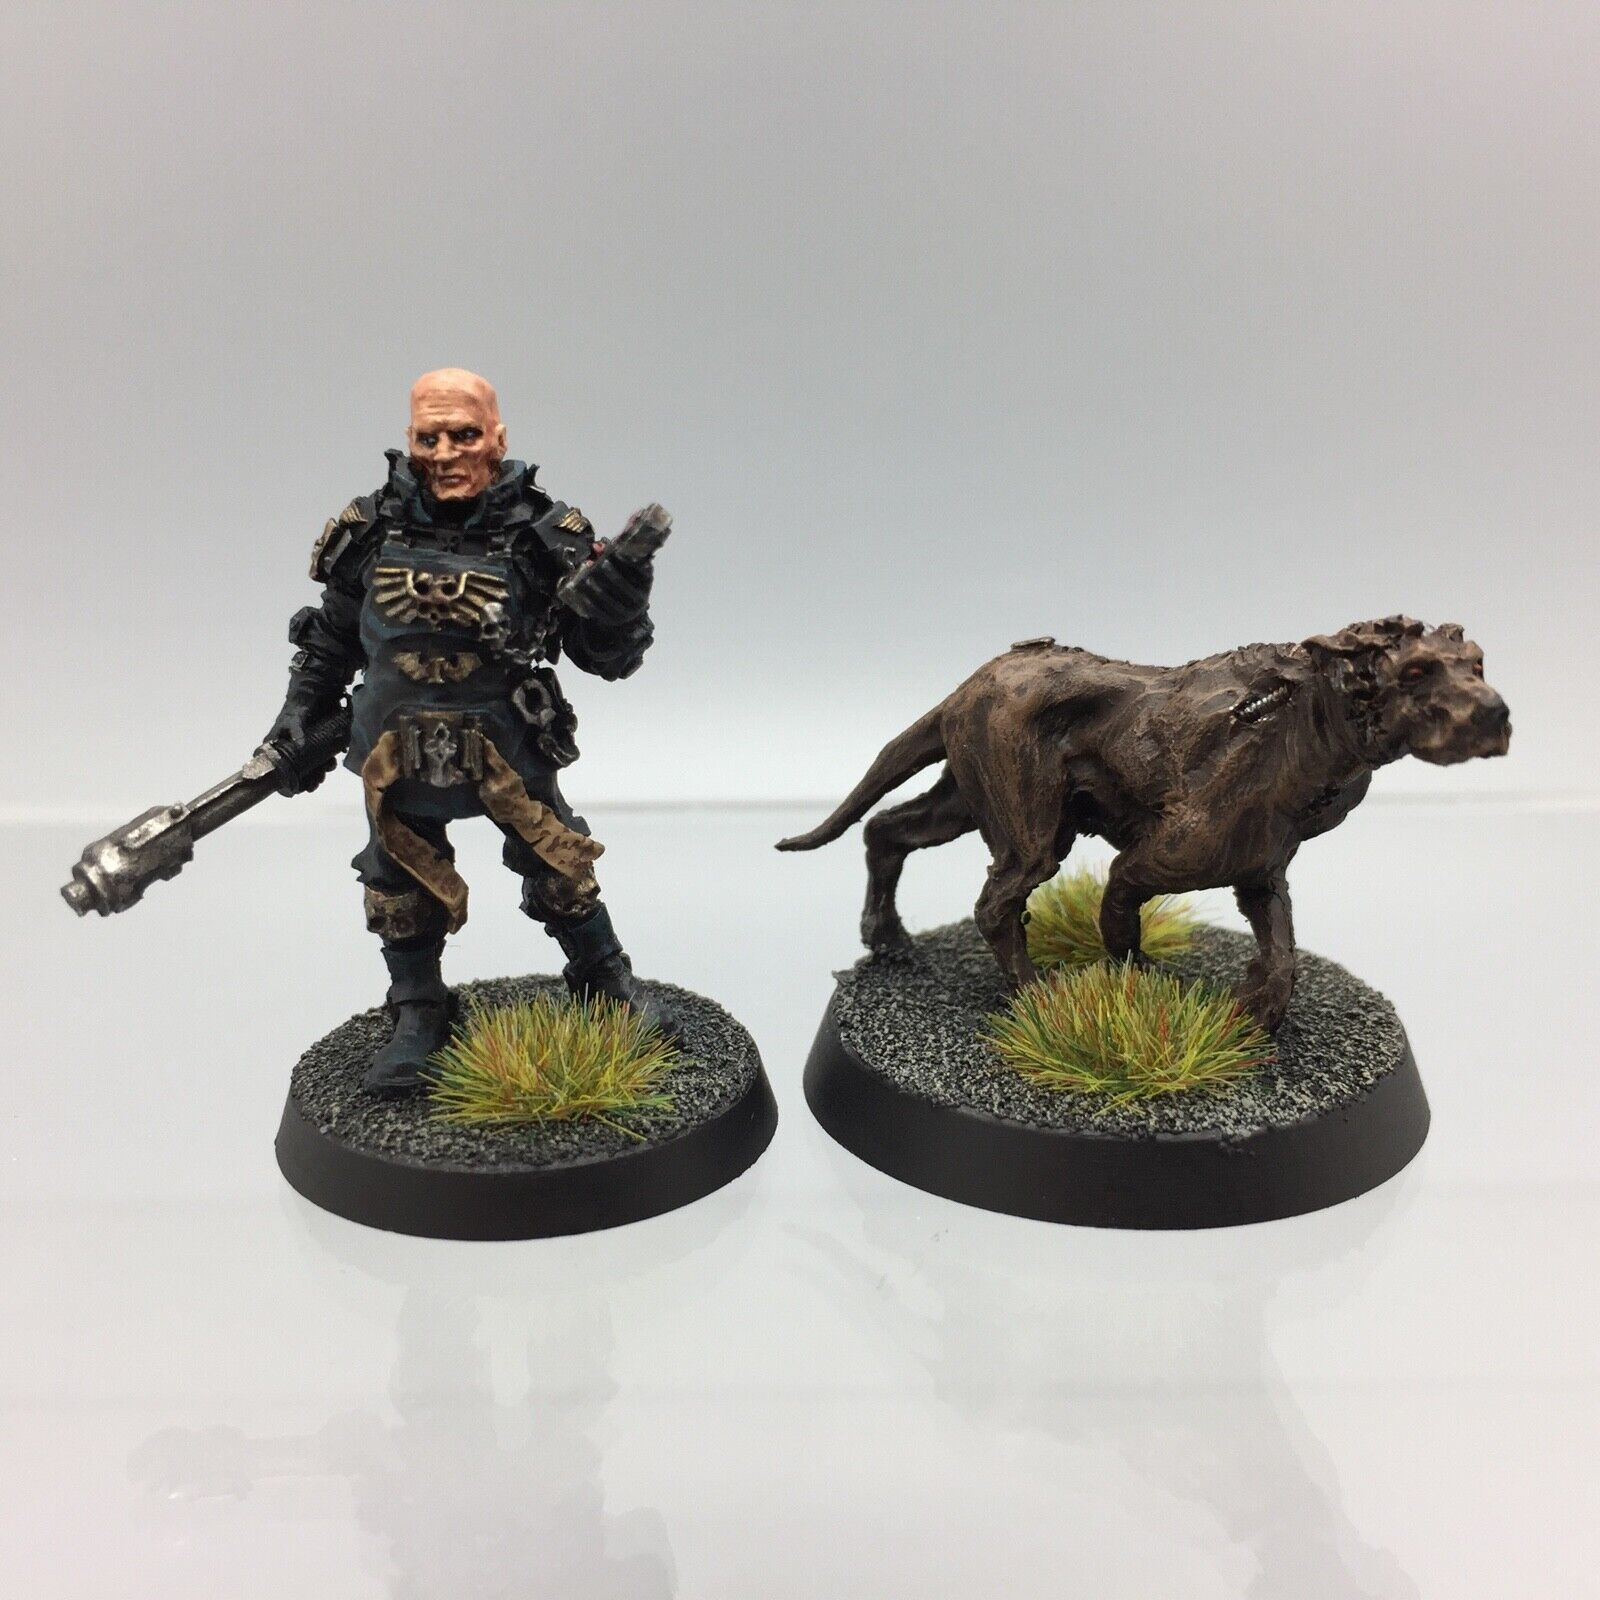 Warhammer 40,000 Imperial Enforcer  & Cyber Dogue Arbites Forge World painted  service de première classe